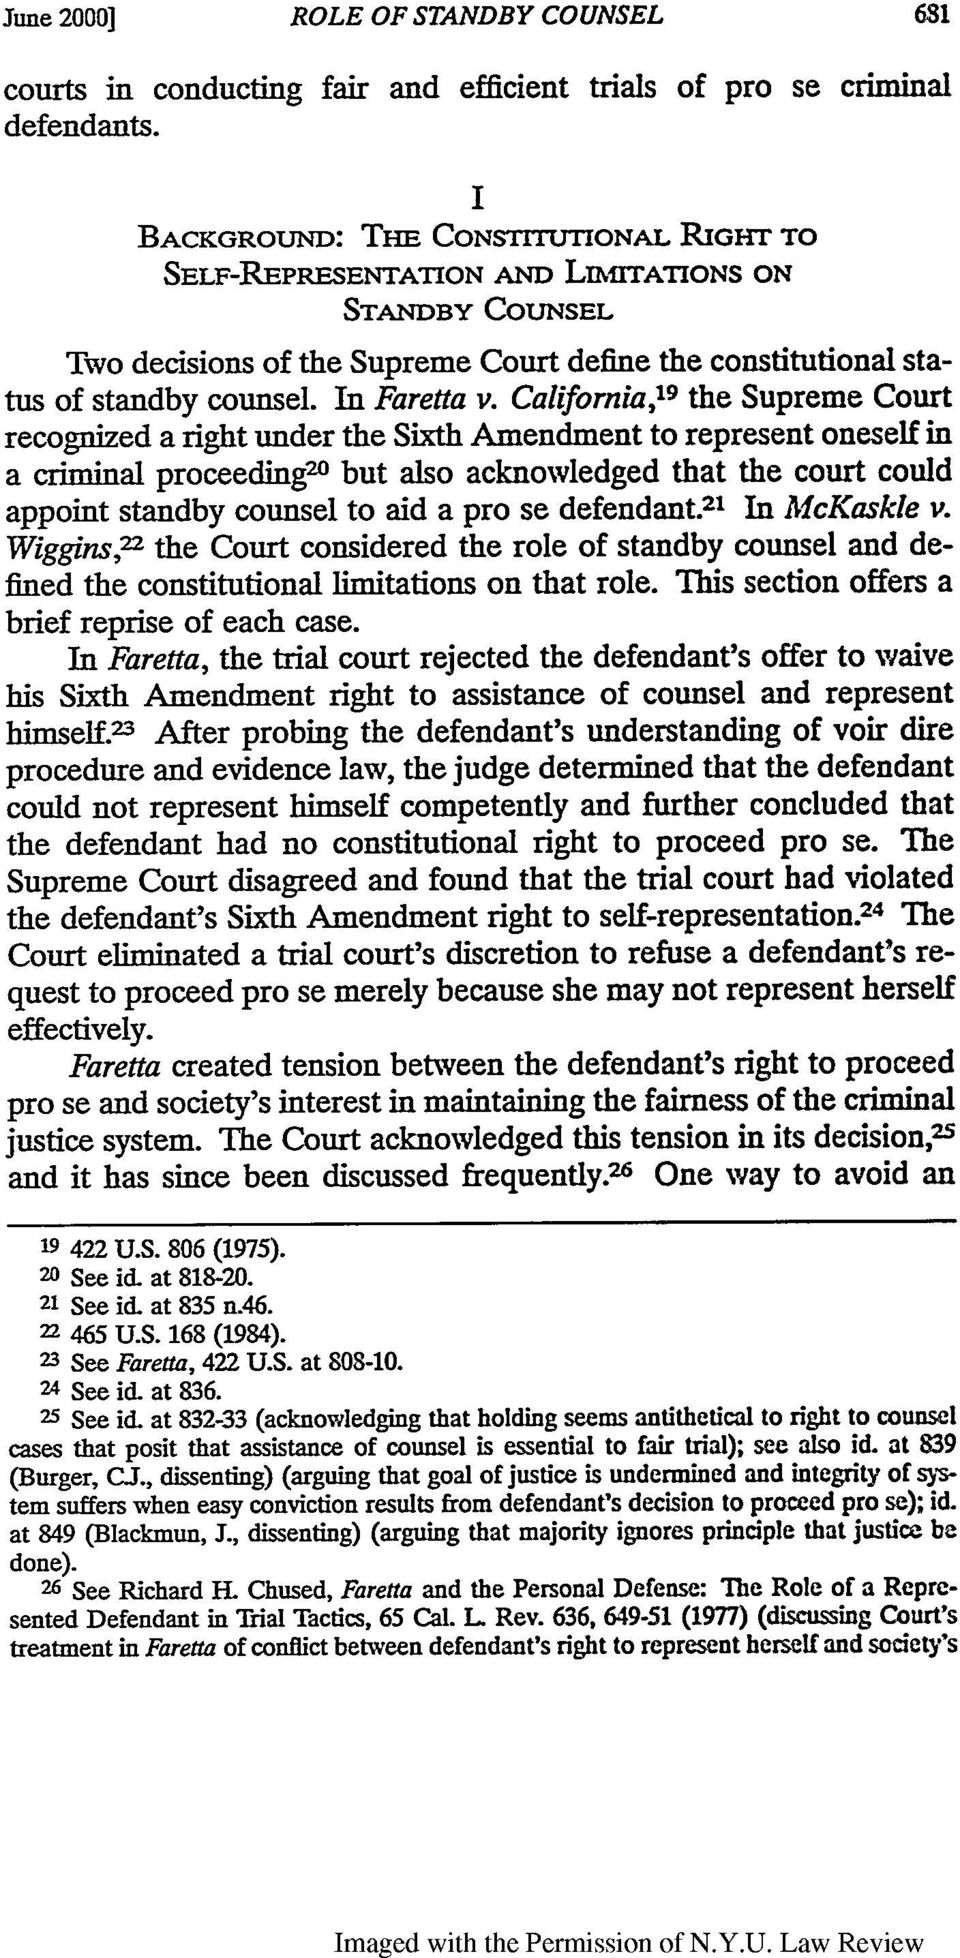 California, 19 the Supreme Court recognized a right under the Sixth Amendment to represent oneself in a criminal proceedingm but also acknowledged that the court could appoint standby counsel to aid